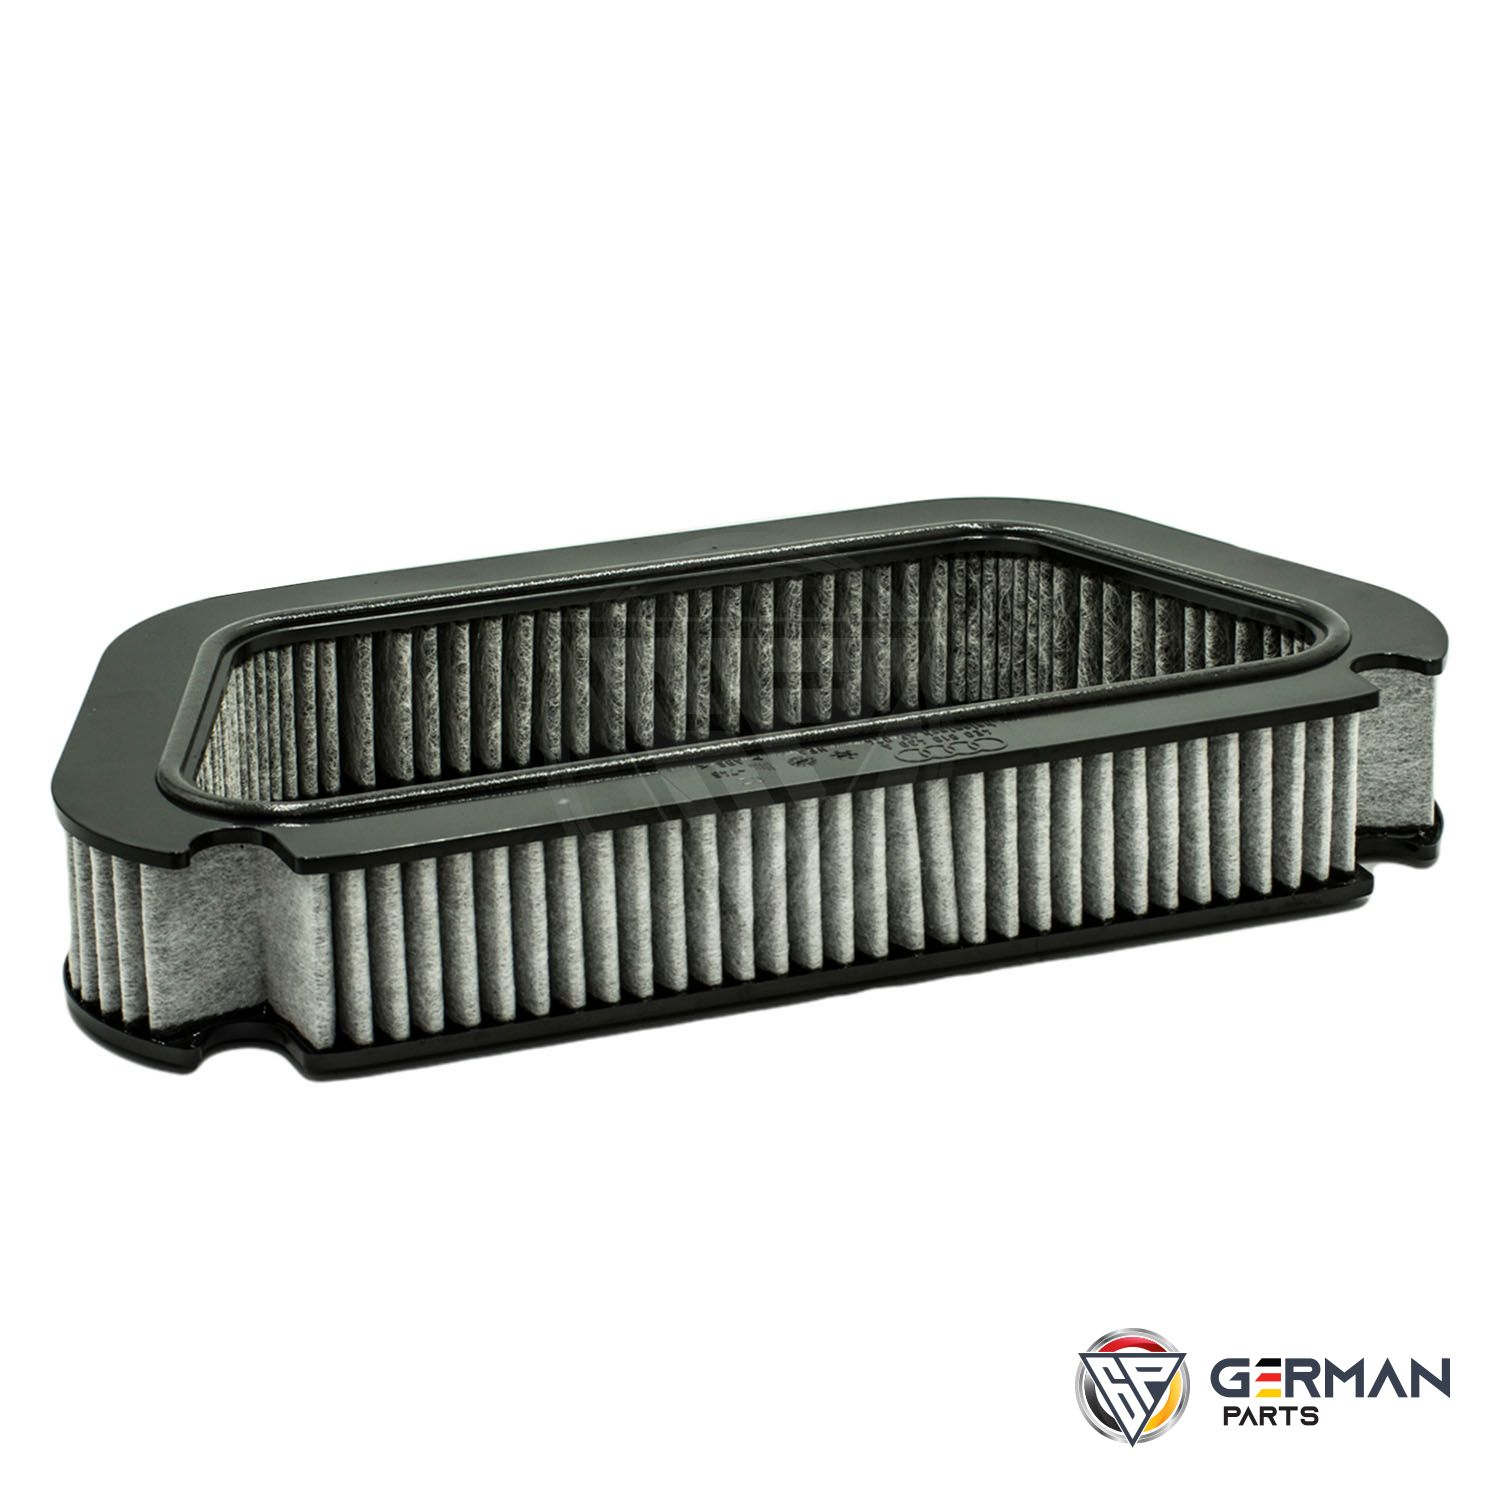 Buy Genuine Audi/Volkswagen Air Filter 4E0819439A - German Parts